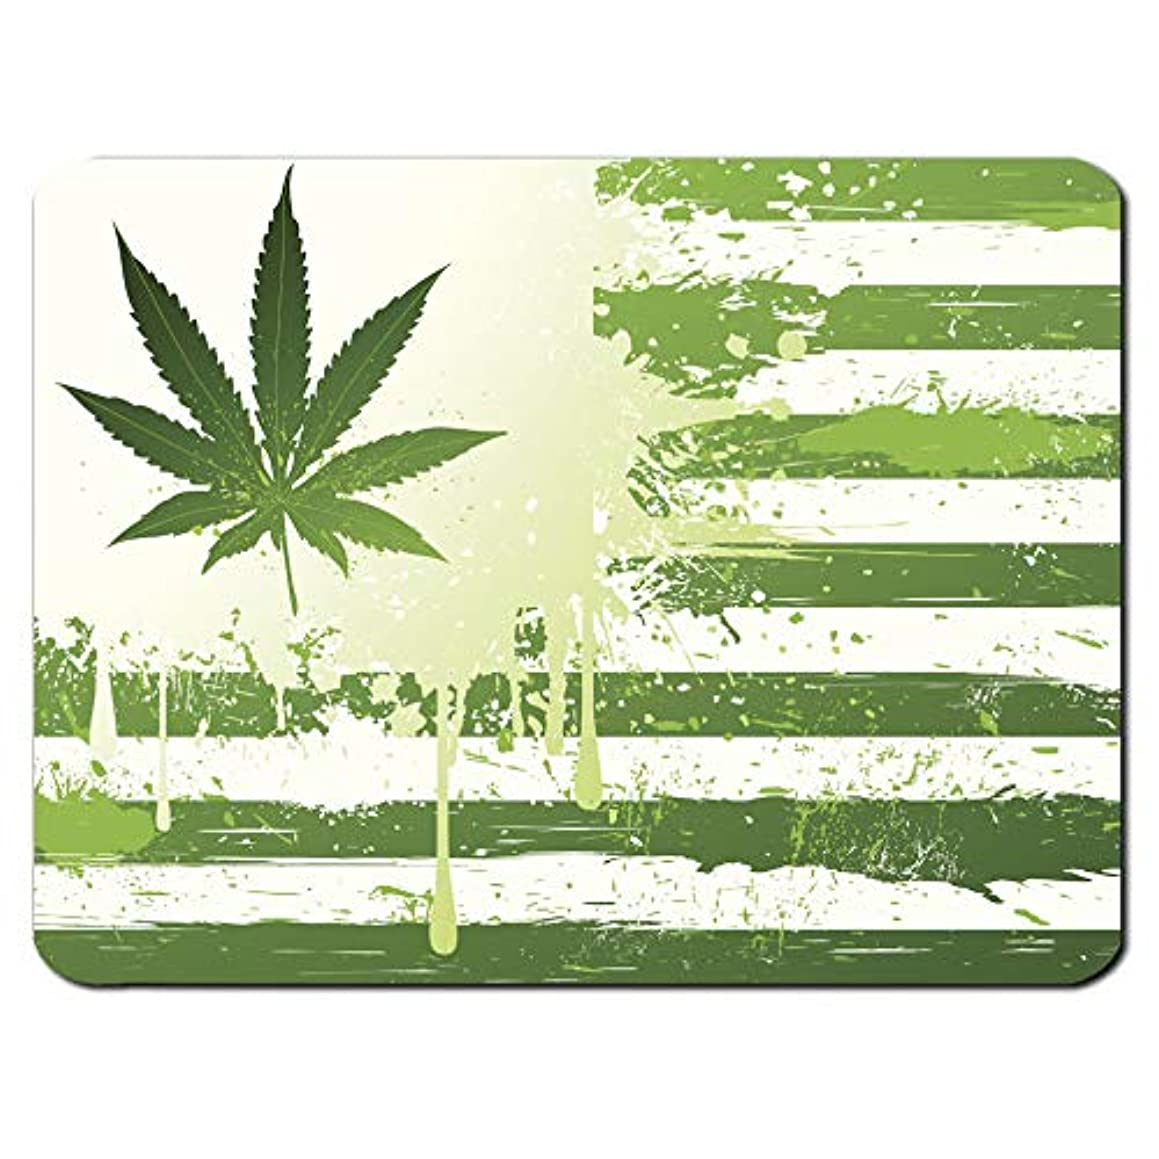 USA Weed Flag Cannabis Marijuana Drugs Dope Funny PC Computer Mouse Mat Pad